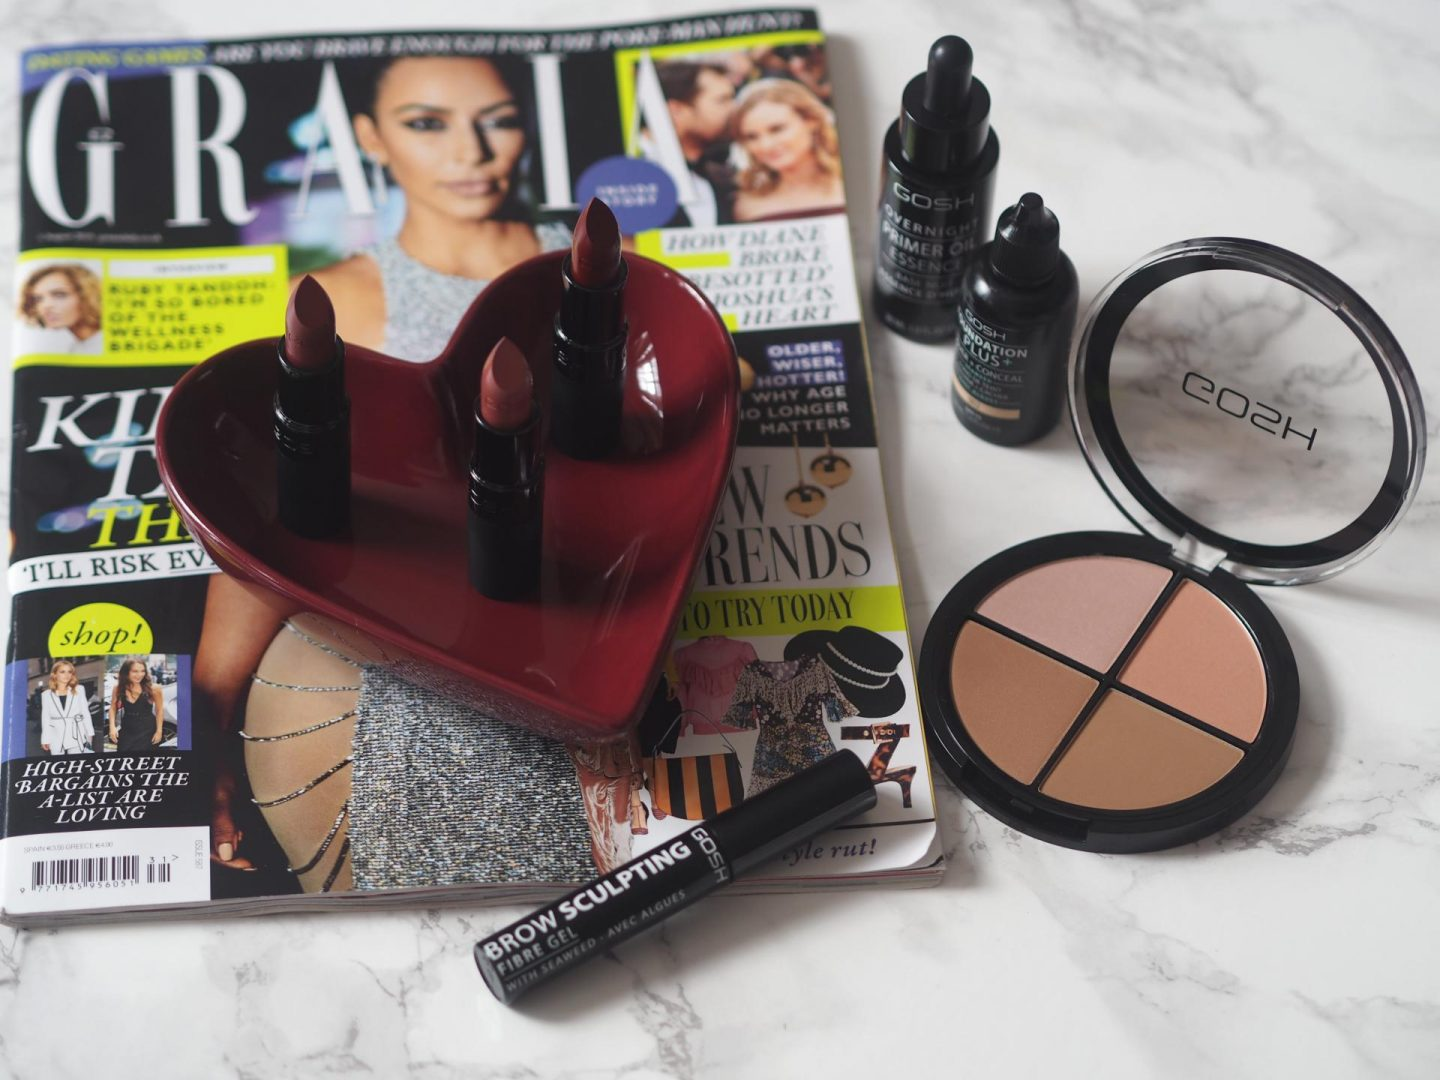 What's New from Gosh Copenhagen This Week! – Beauty Rocks